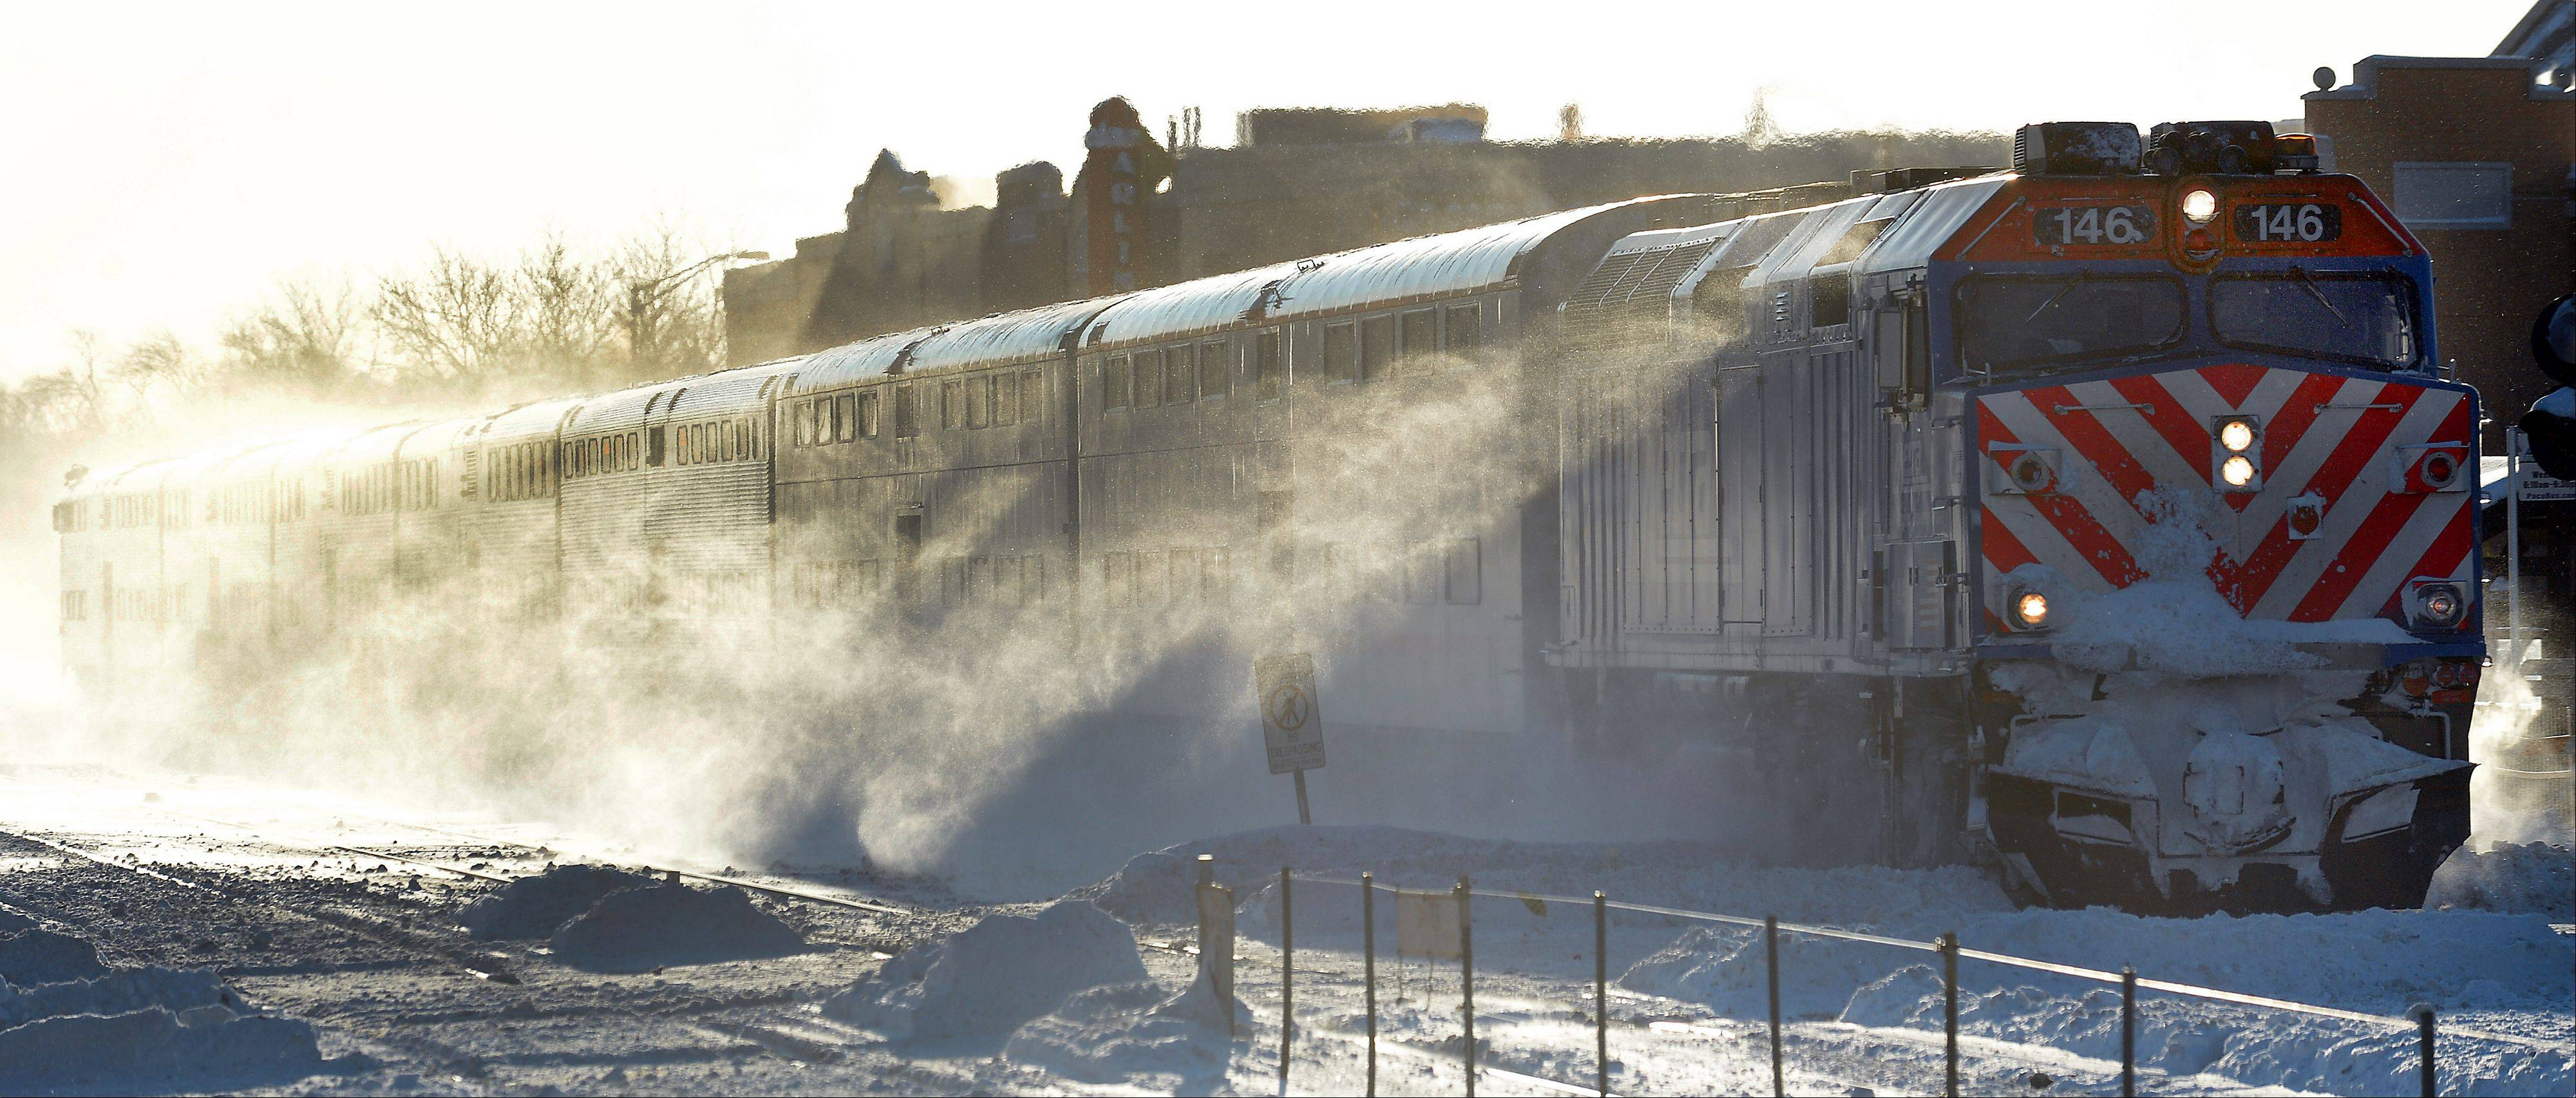 A Metra train plows its way through the blowing snow as it zips by the Arlington Heights train station in subfreezing temperatures Jan. 6.